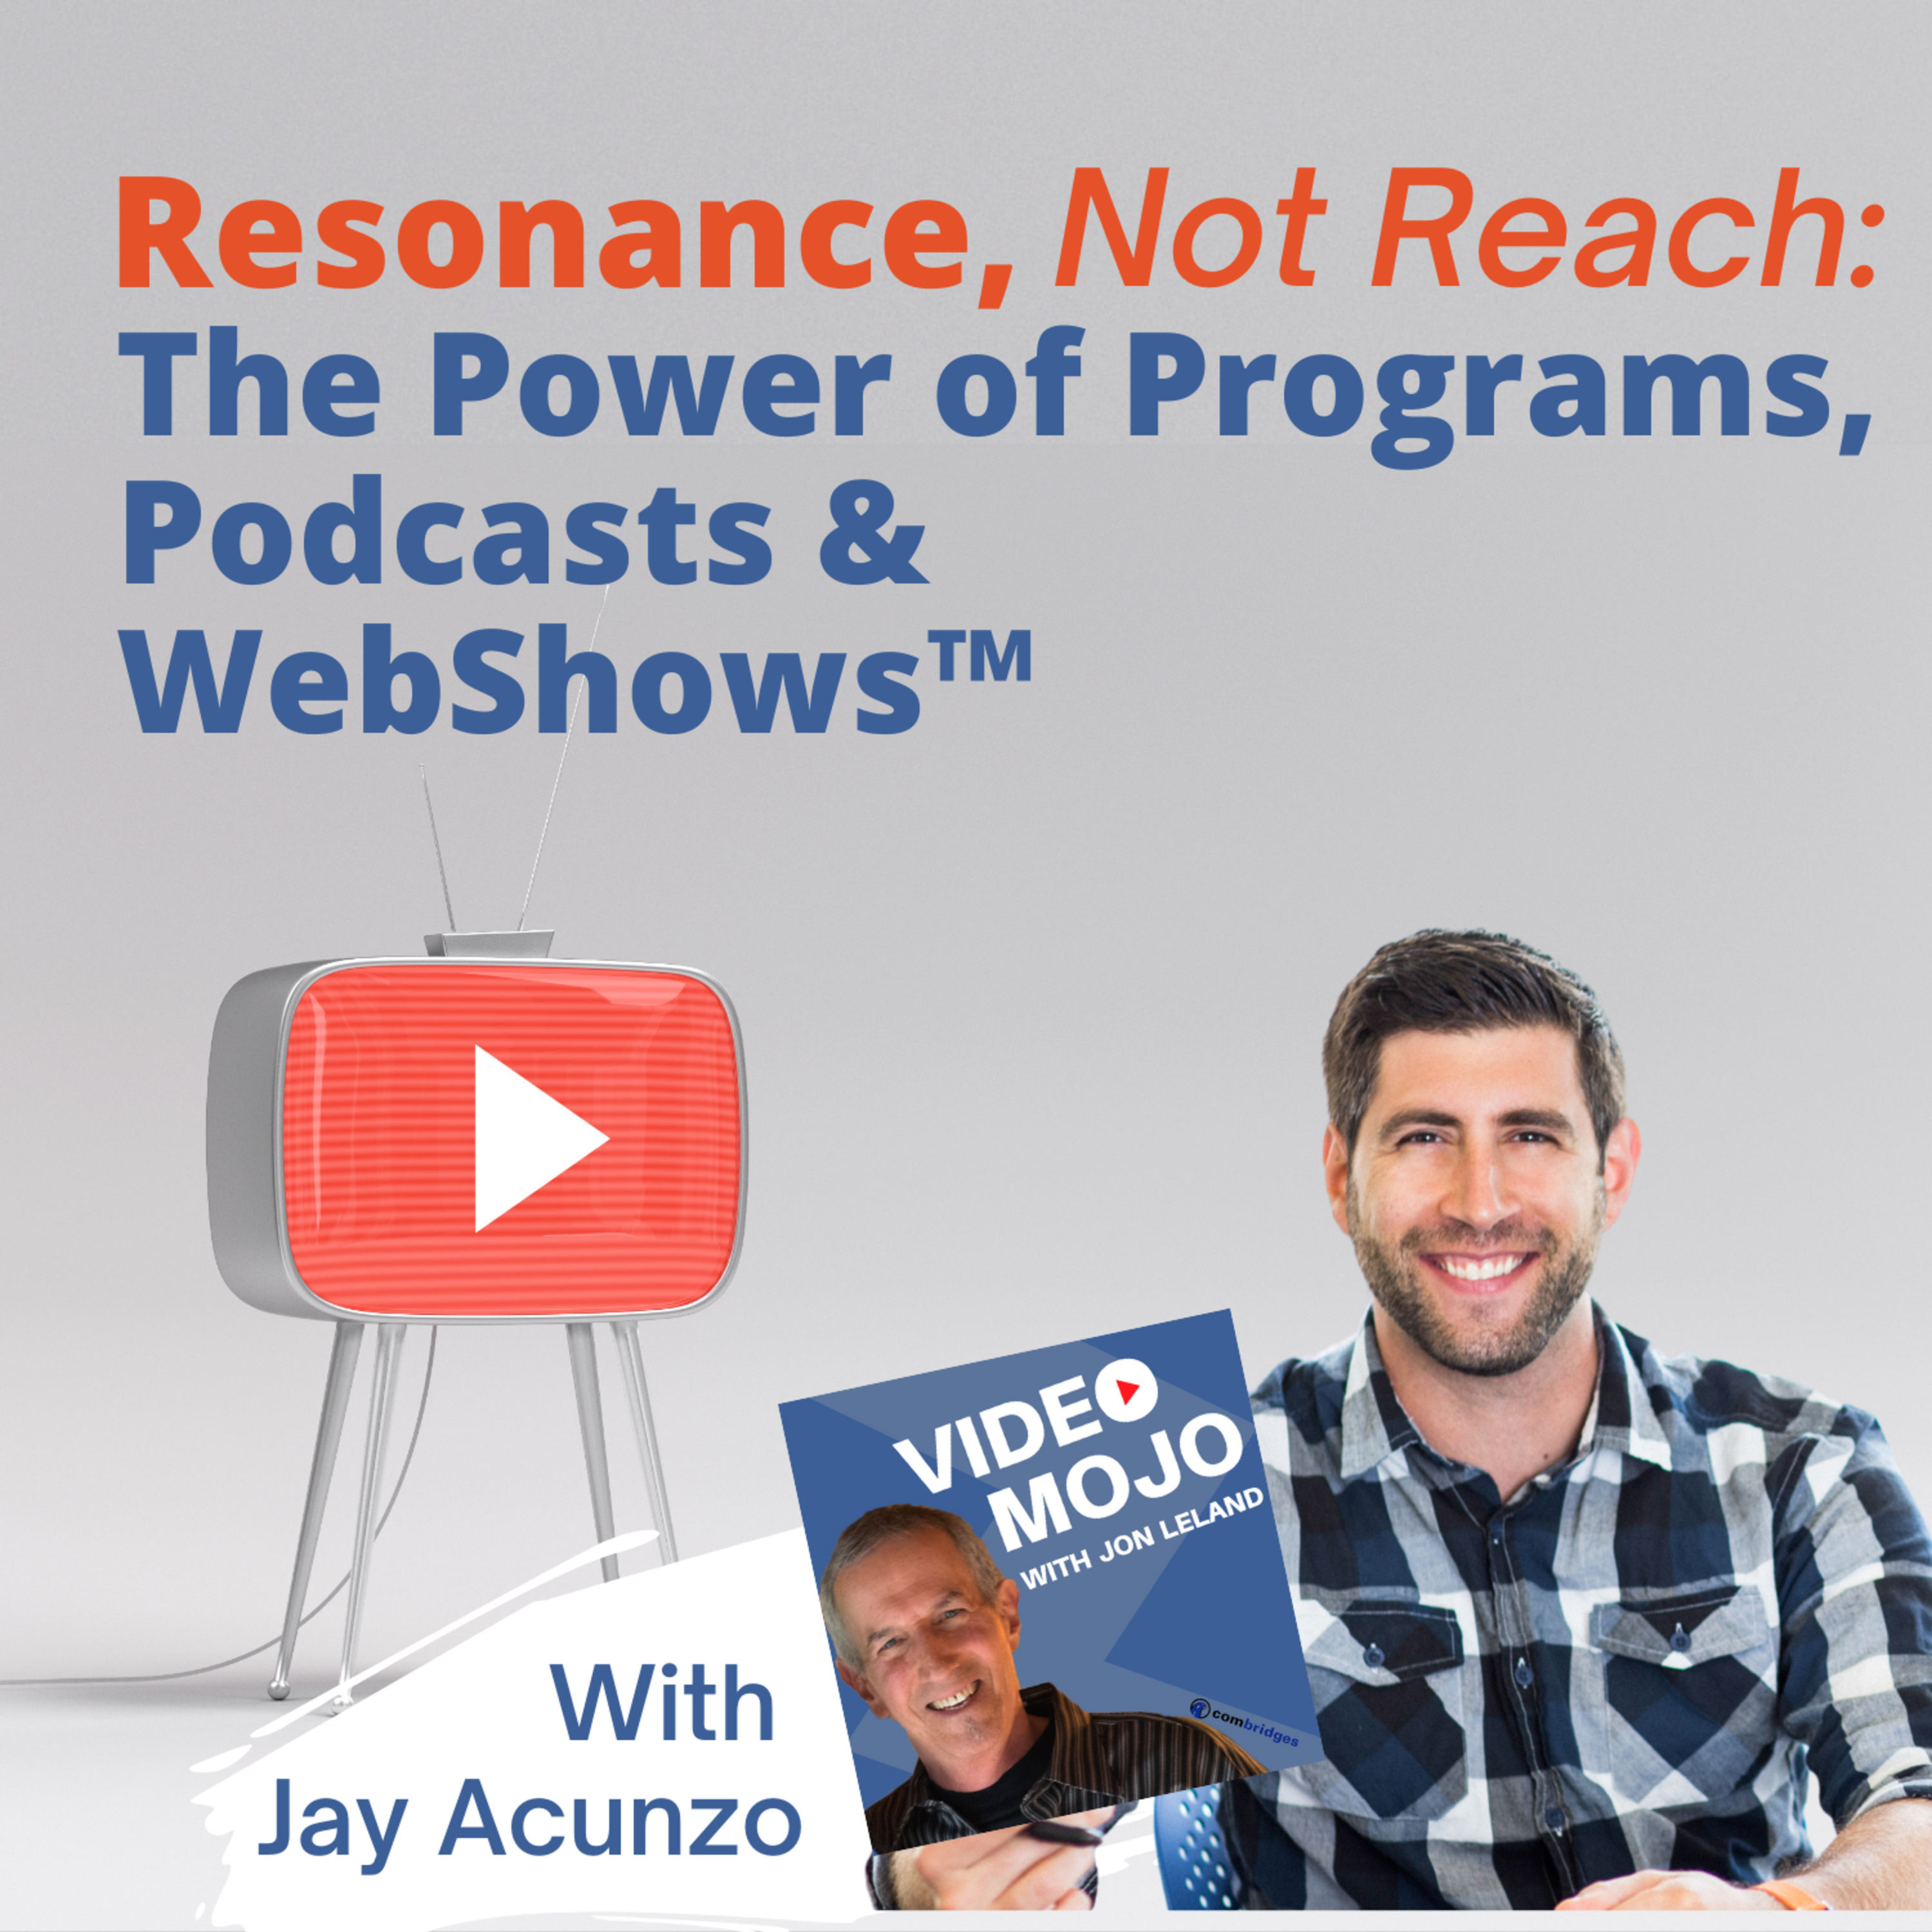 What You Need to Know About The Power of Programs, Podcasts & WebShows™ with Jay Acunzo